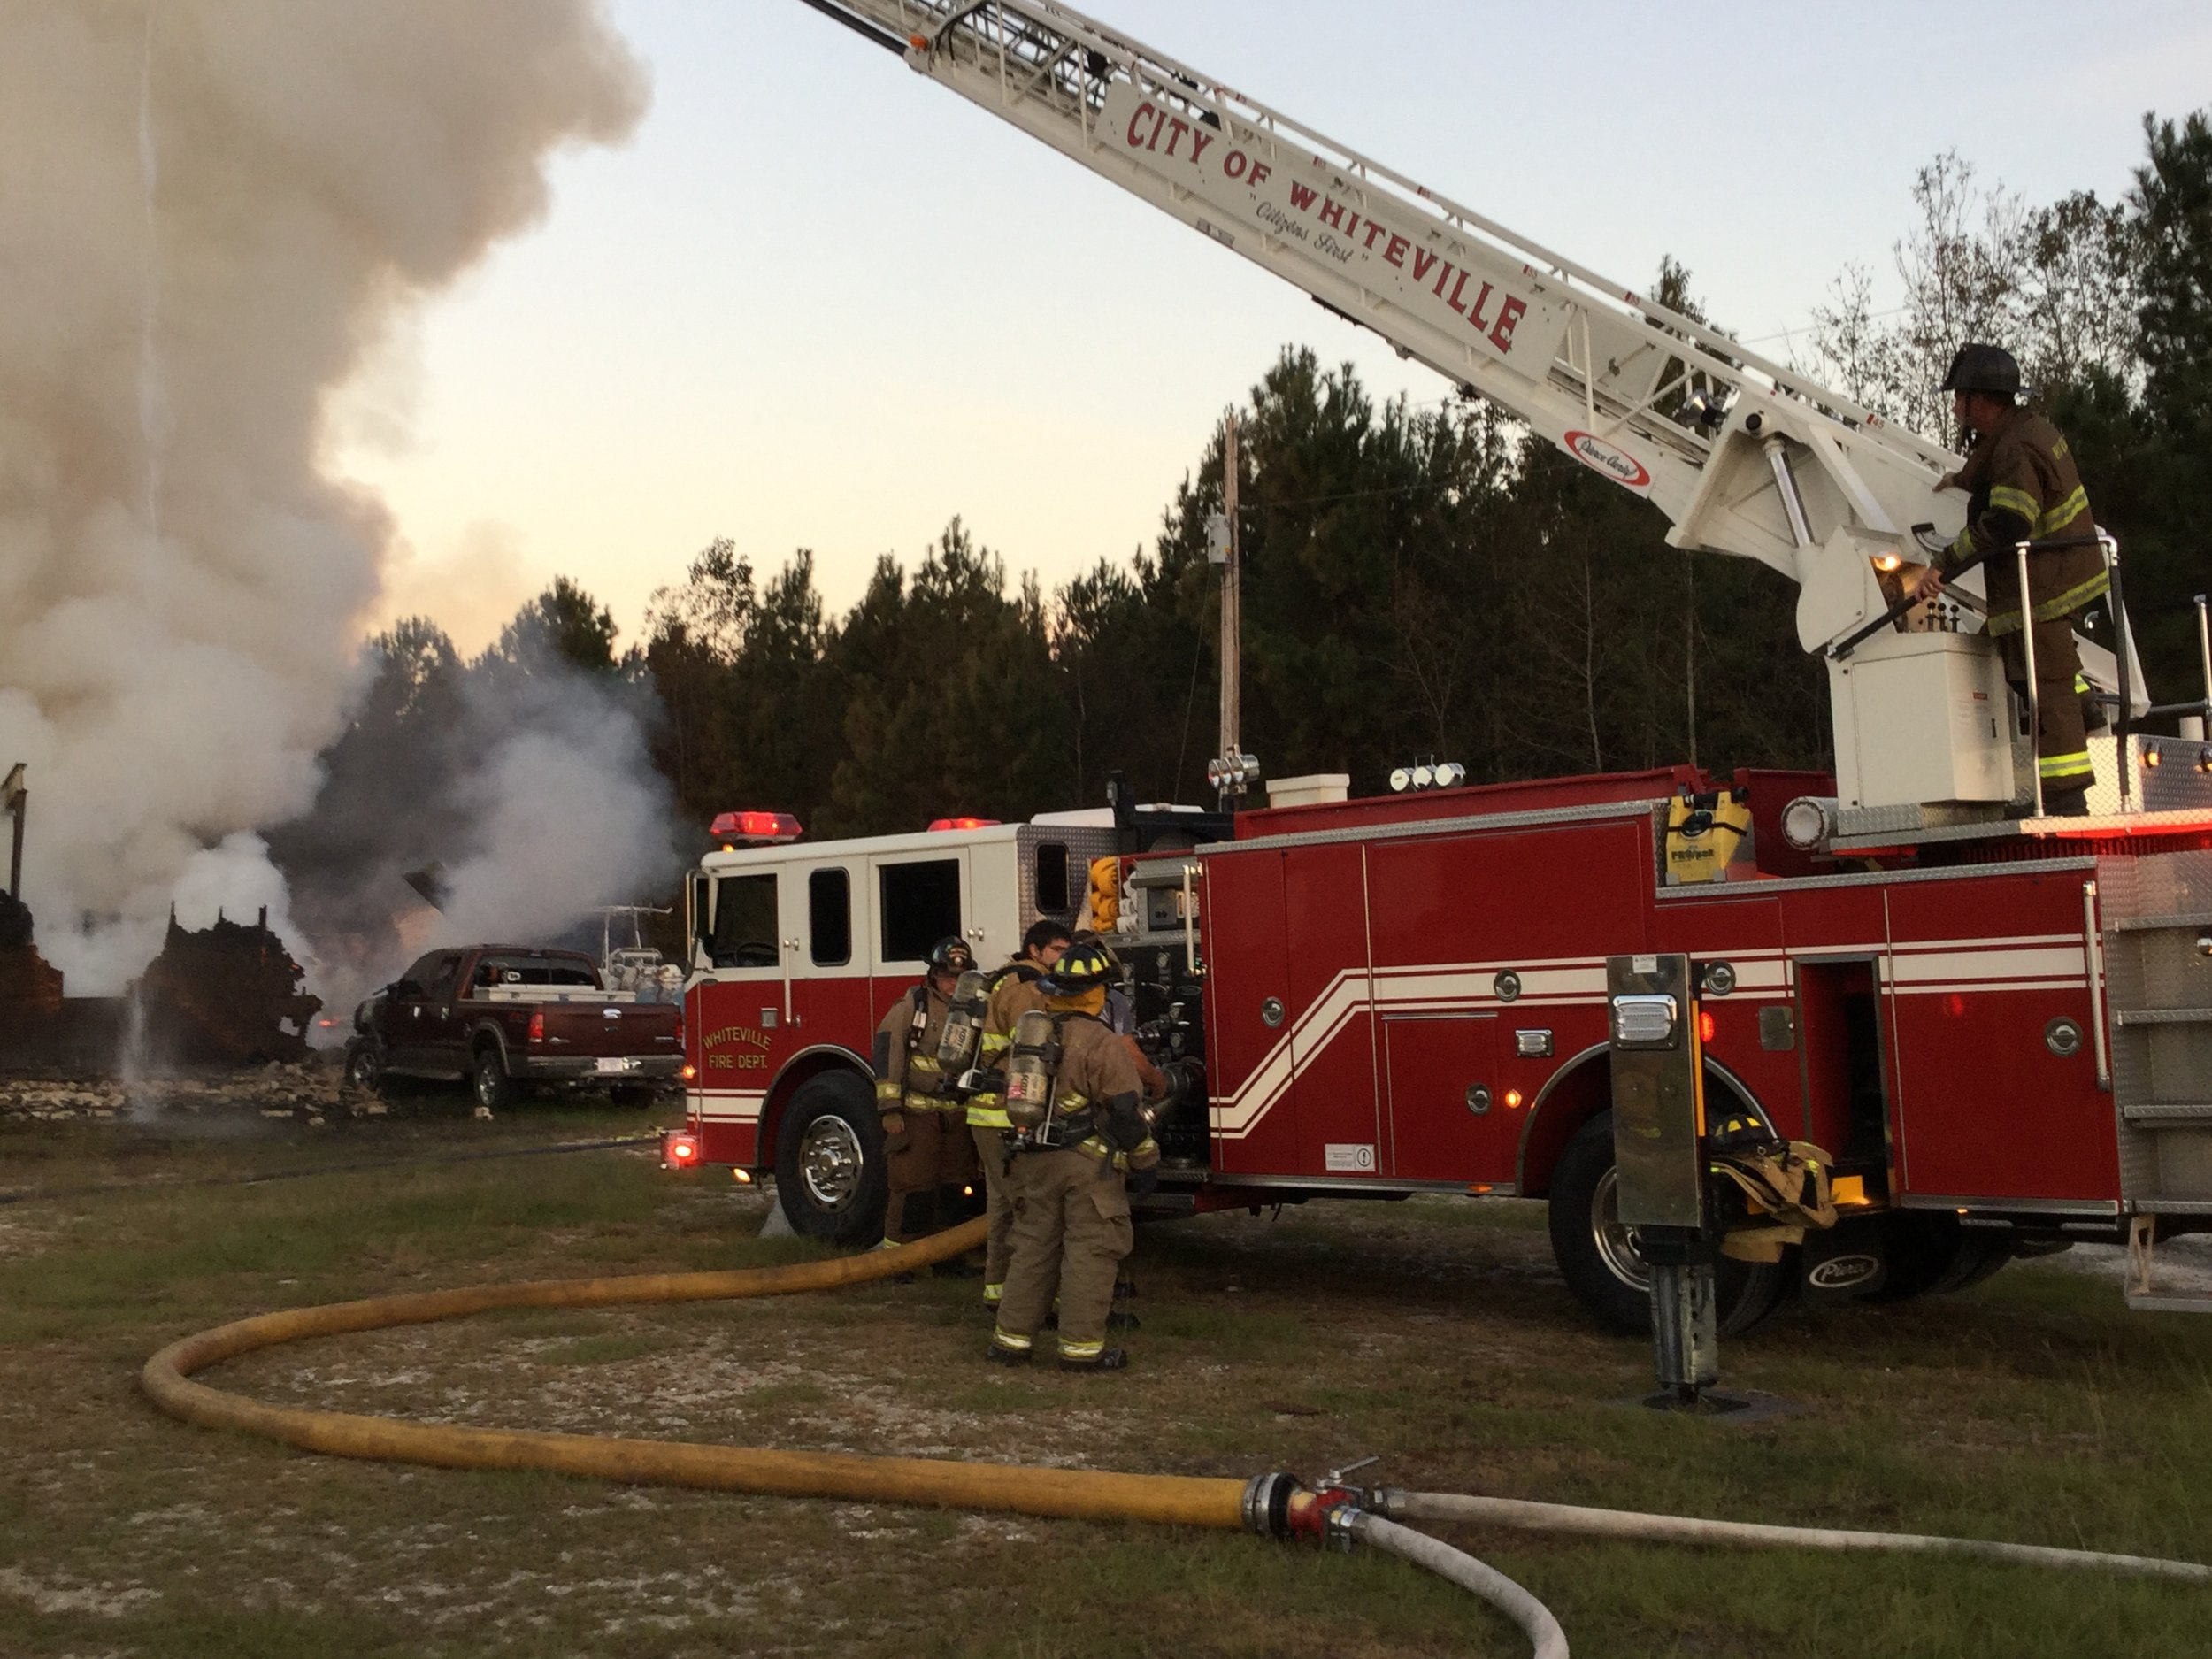 whiteville fire department (1).jpeg